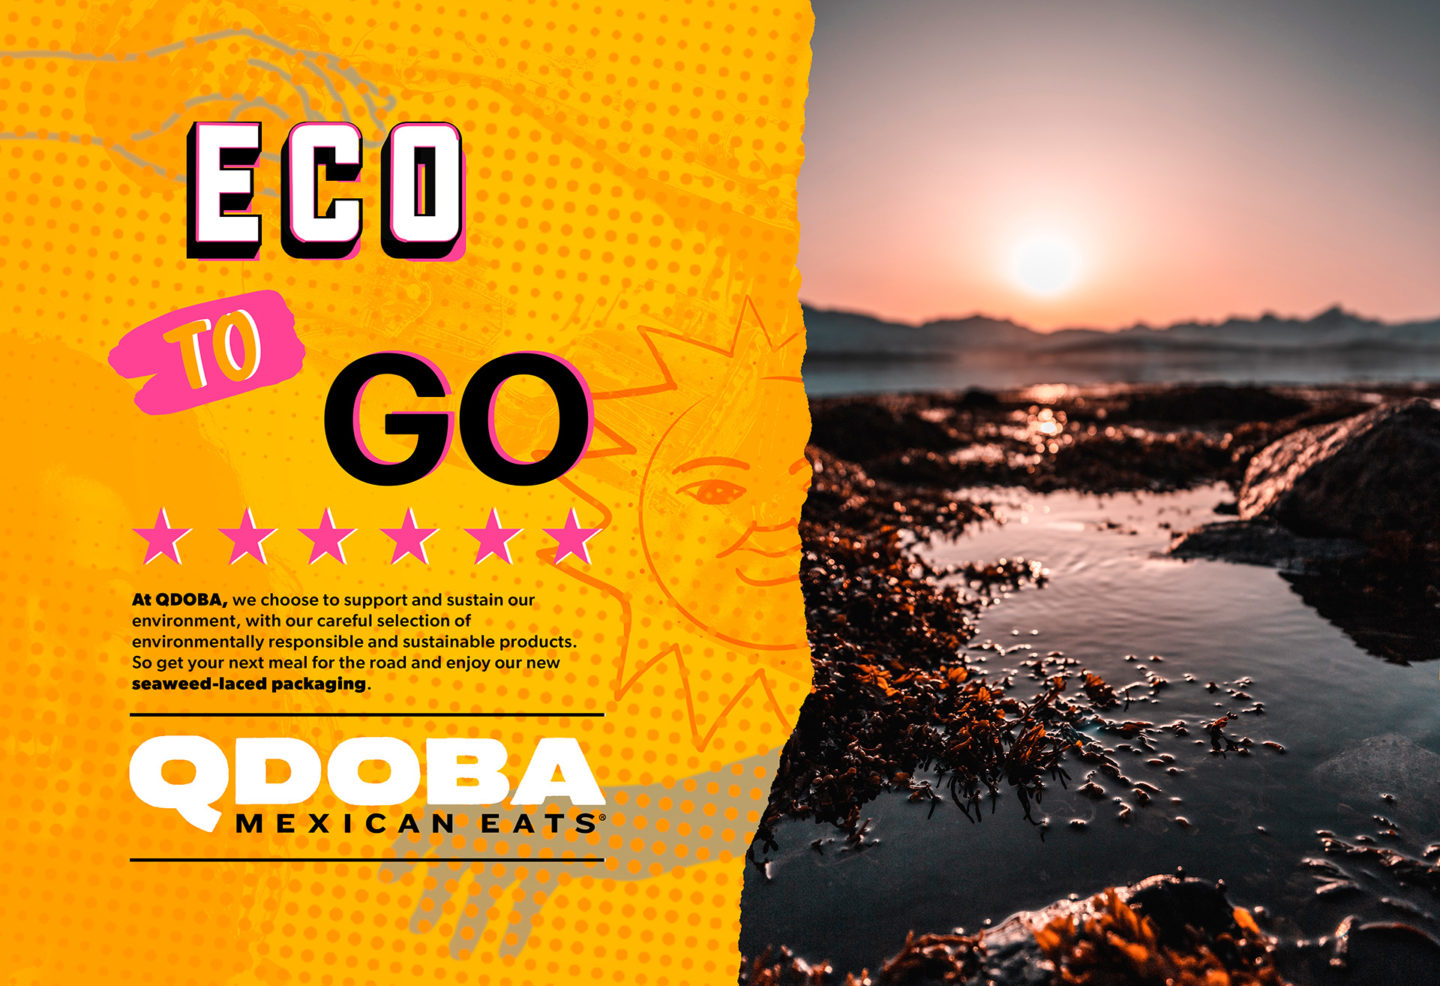 I chose to create an ad for Qdoba, that promotes a shift to seaweed-laced packaging.